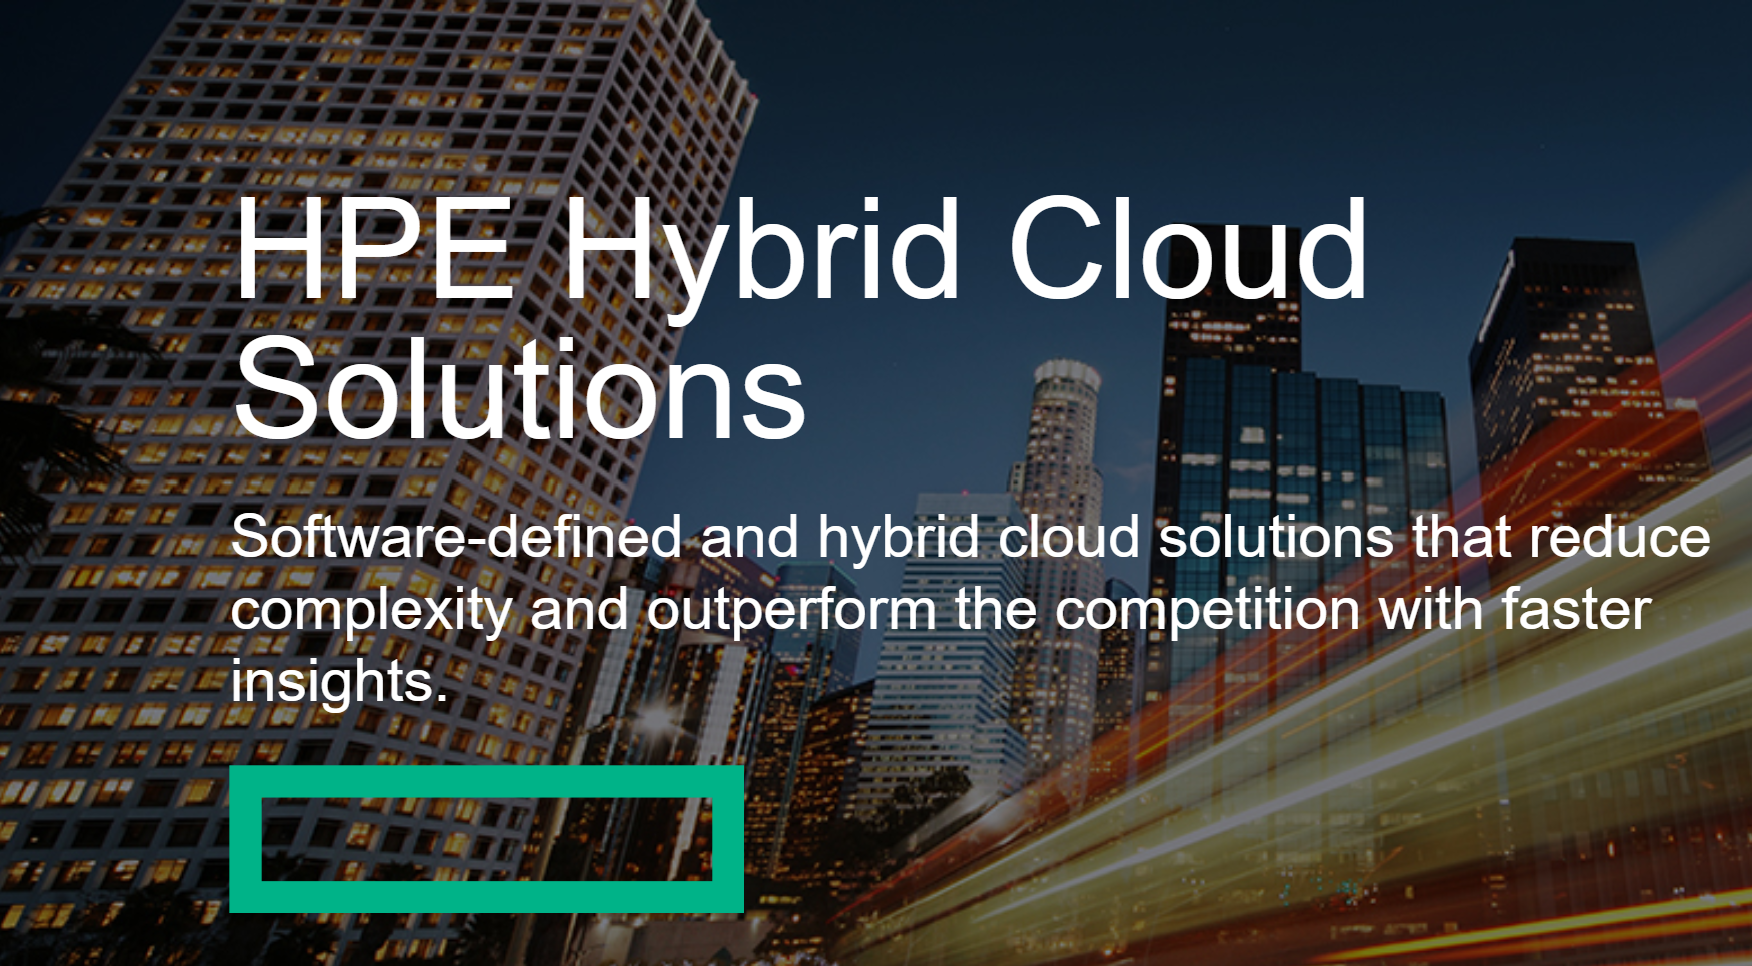 HPE Hybrid Cloud Solutions